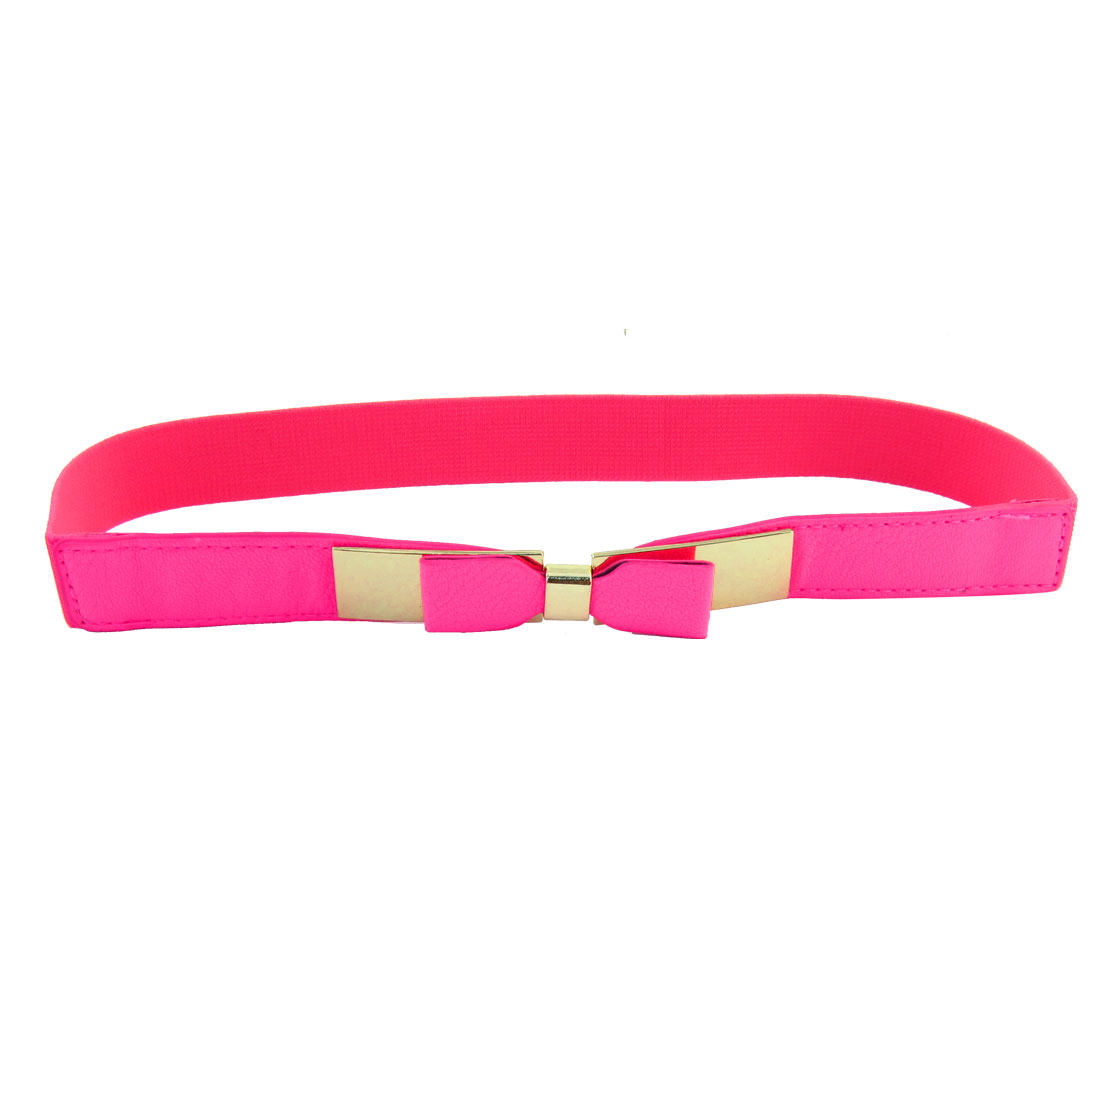 Rectangular Design Metal Interlock Buckle Stretch Silm Belt Waistband Hot Pink